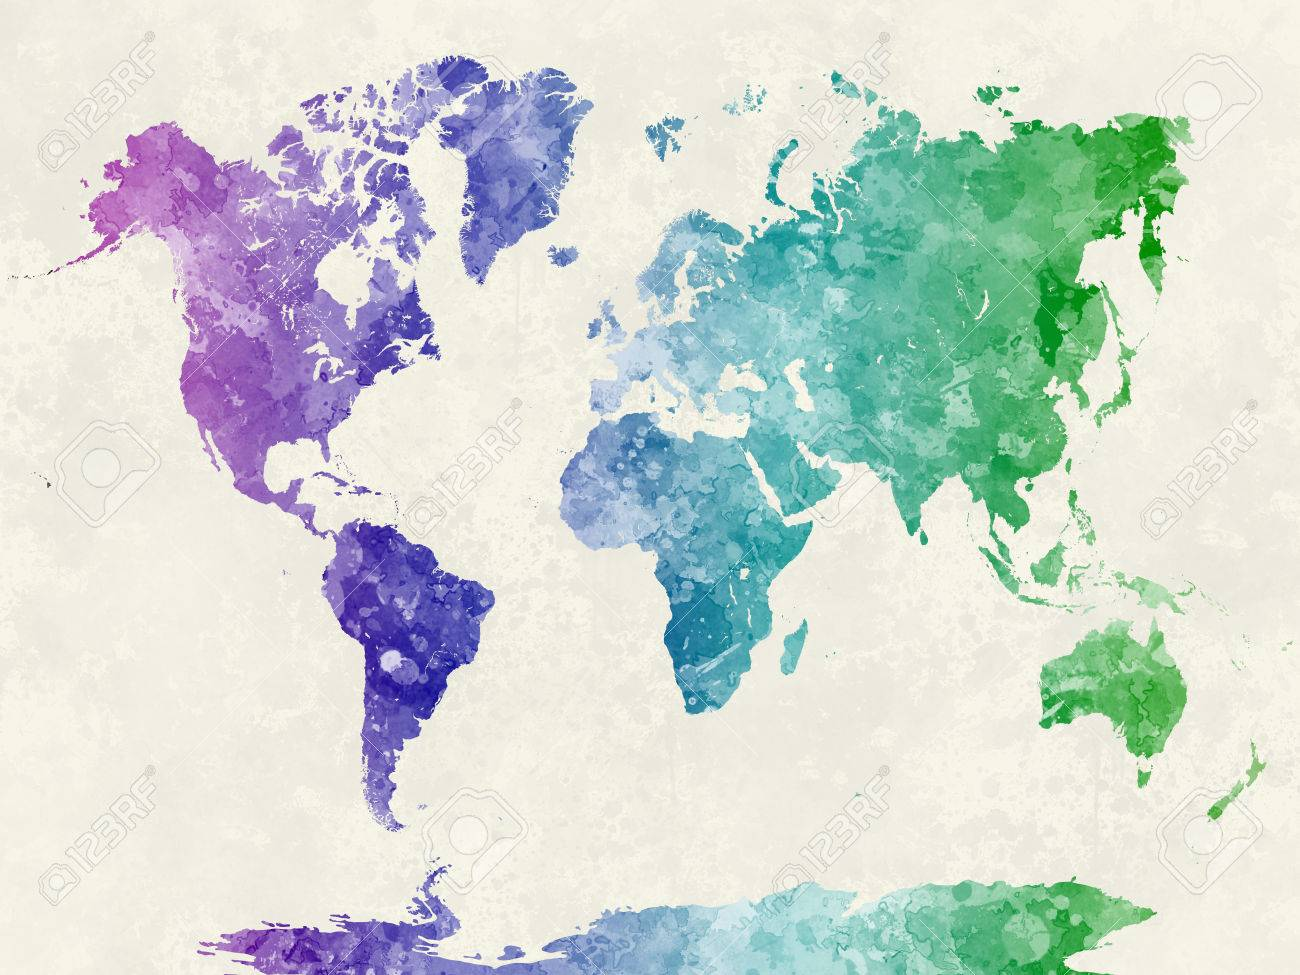 World map in watercolor painting abstract splatters stock photo stock photo world map in watercolor painting abstract splatters publicscrutiny Image collections